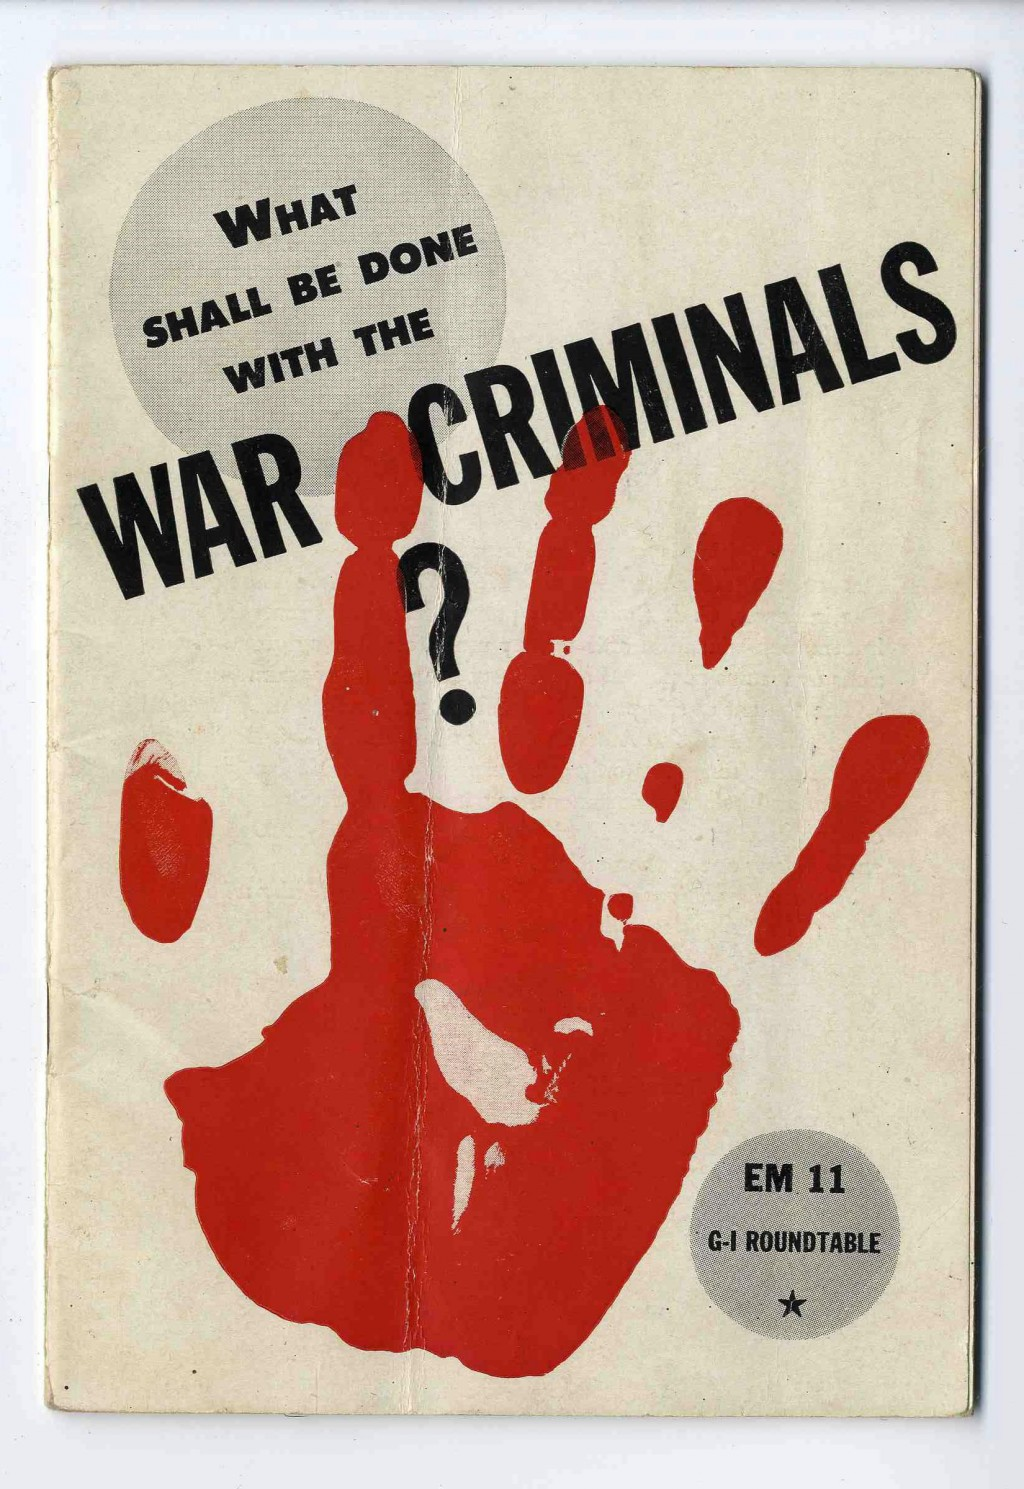 "<p>Cover of booklet titled ""What Shall Be Done with the War Criminals?"" Published by the United States Armed Forces Institute, this was one of a series of 42 pamphlets created by the U.S. War Department under the series title ""G.I. Roundtable."" From 1943-1945, these pamphlets were created to ""increase the effectiveness of the soldiers and officers and fighters during the war and as citizens after the war."" Many of the pamphlets addressed the possibilities of a postwar world.</p>"